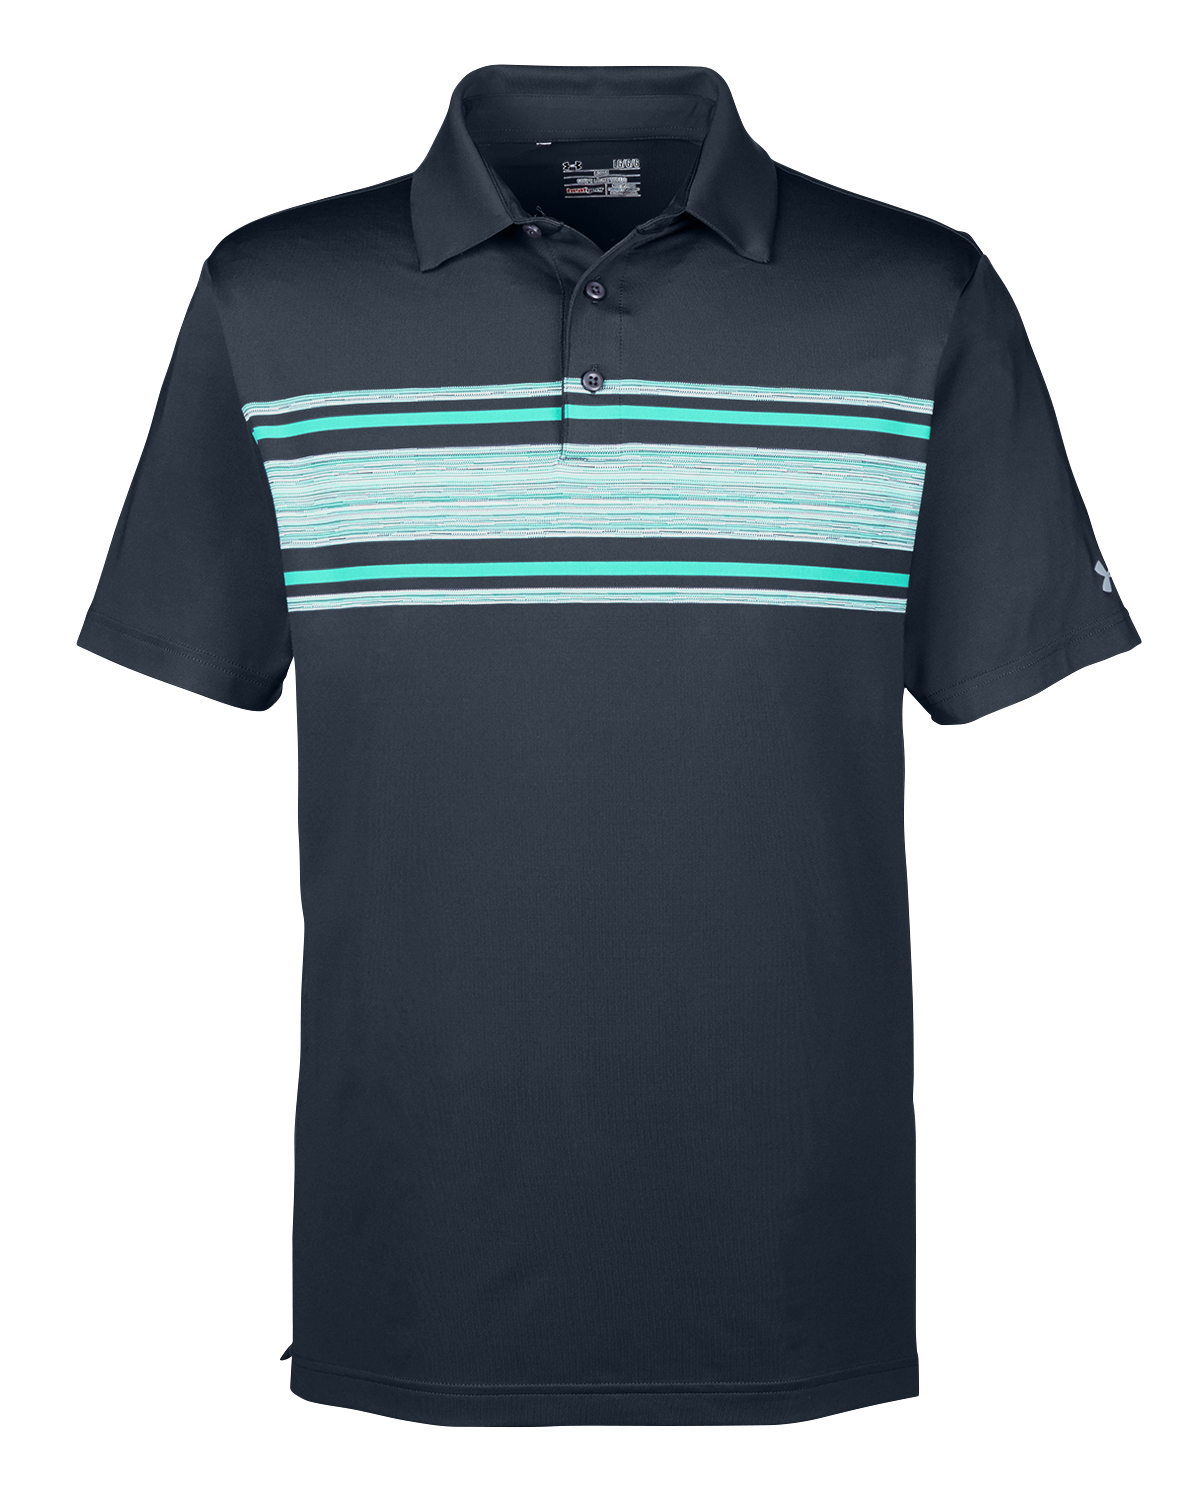 Under Armour 1253479 - Men's Playoff Space Dyed Polo